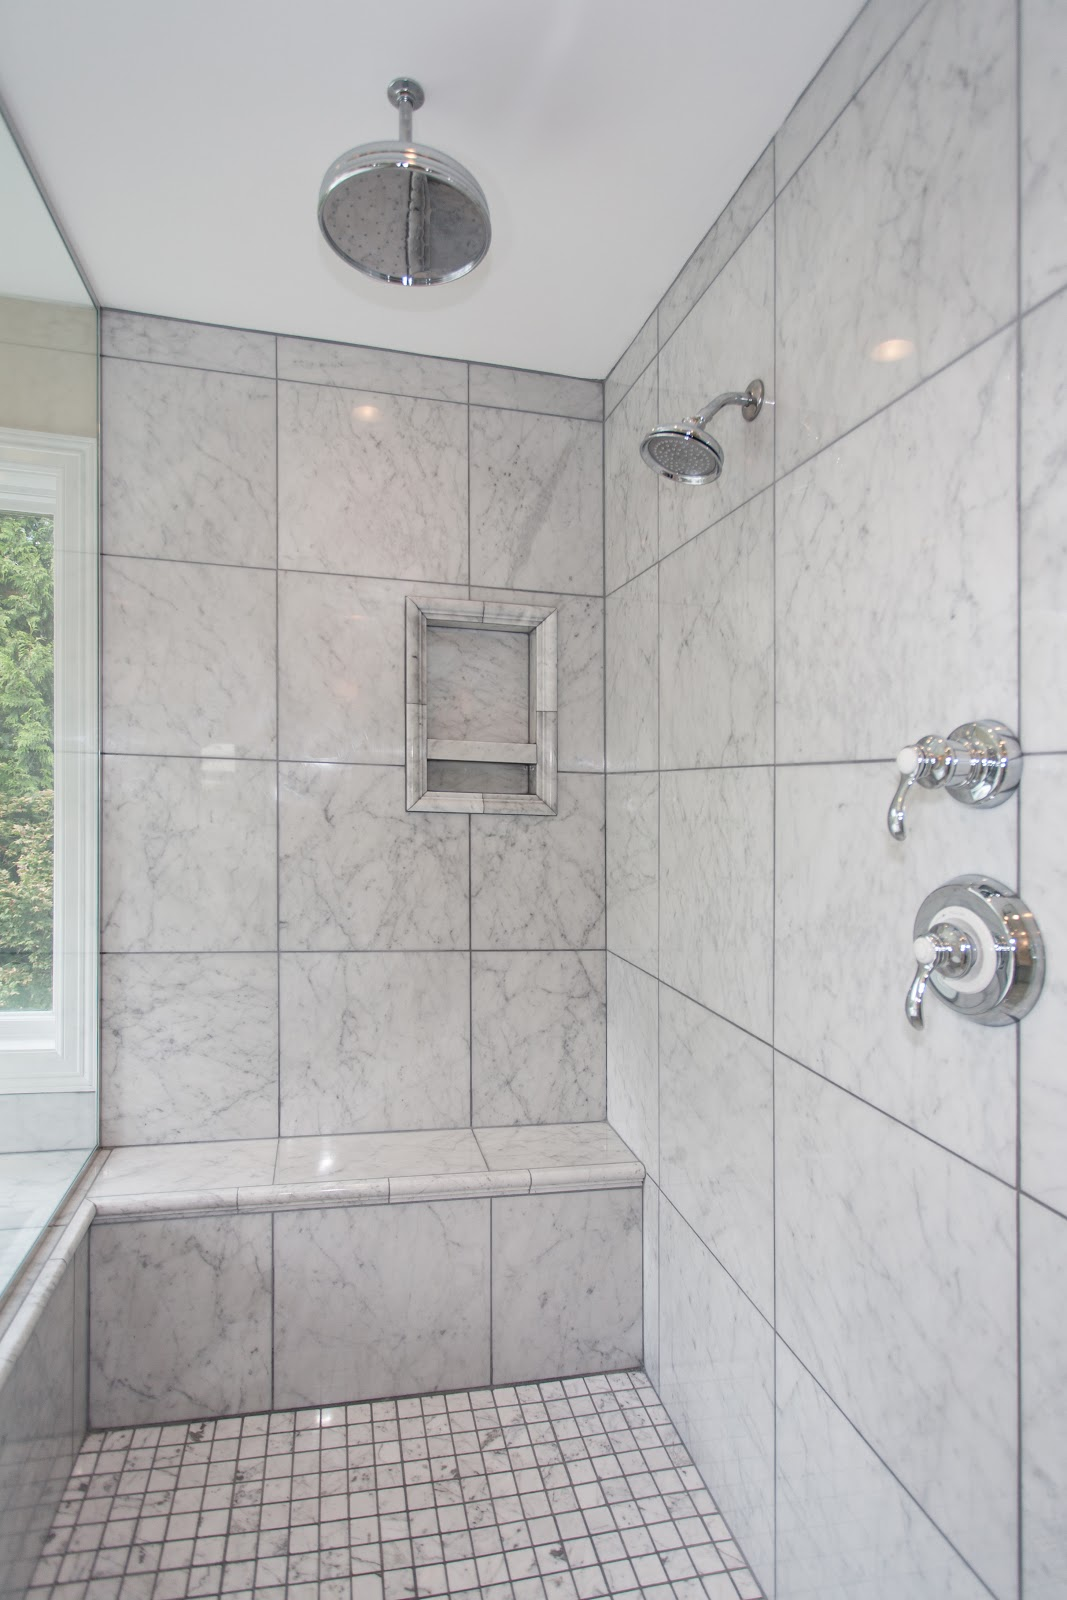 Designing the Perfect Shower. - BUILD YOUR HOUSE YOURSELF UNIVERSITY ...